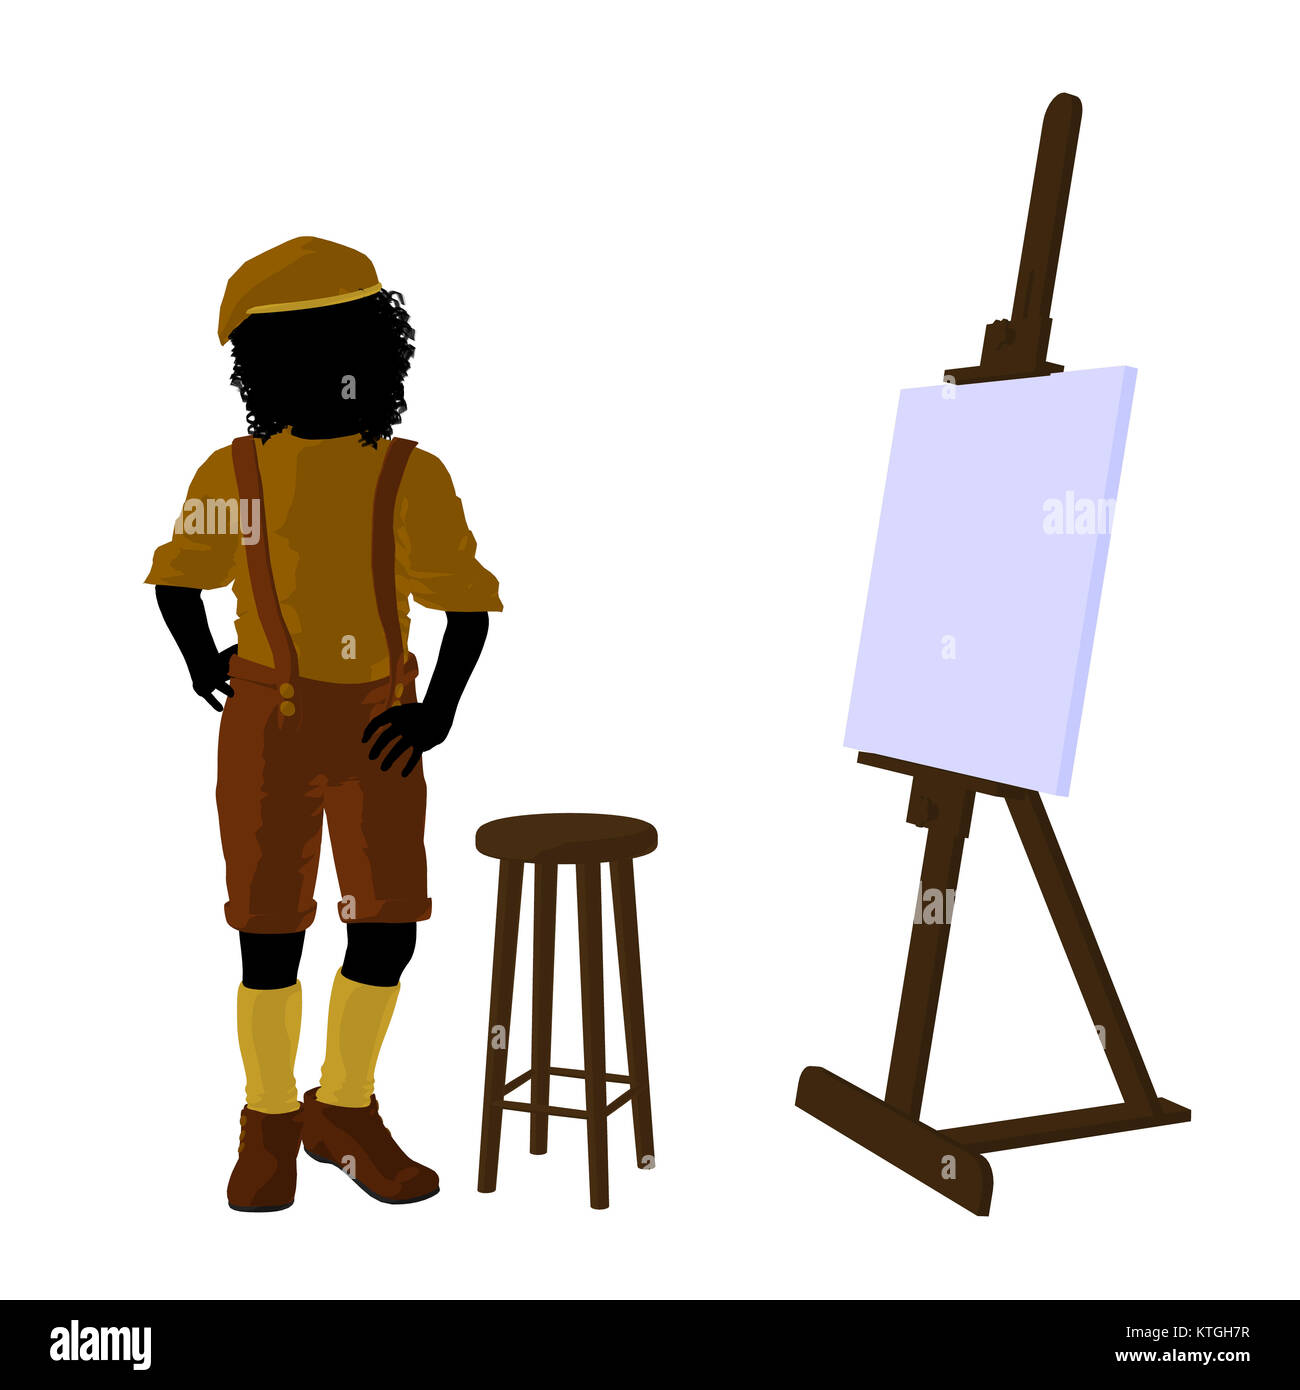 male tween african american artist with an easel and stool on a